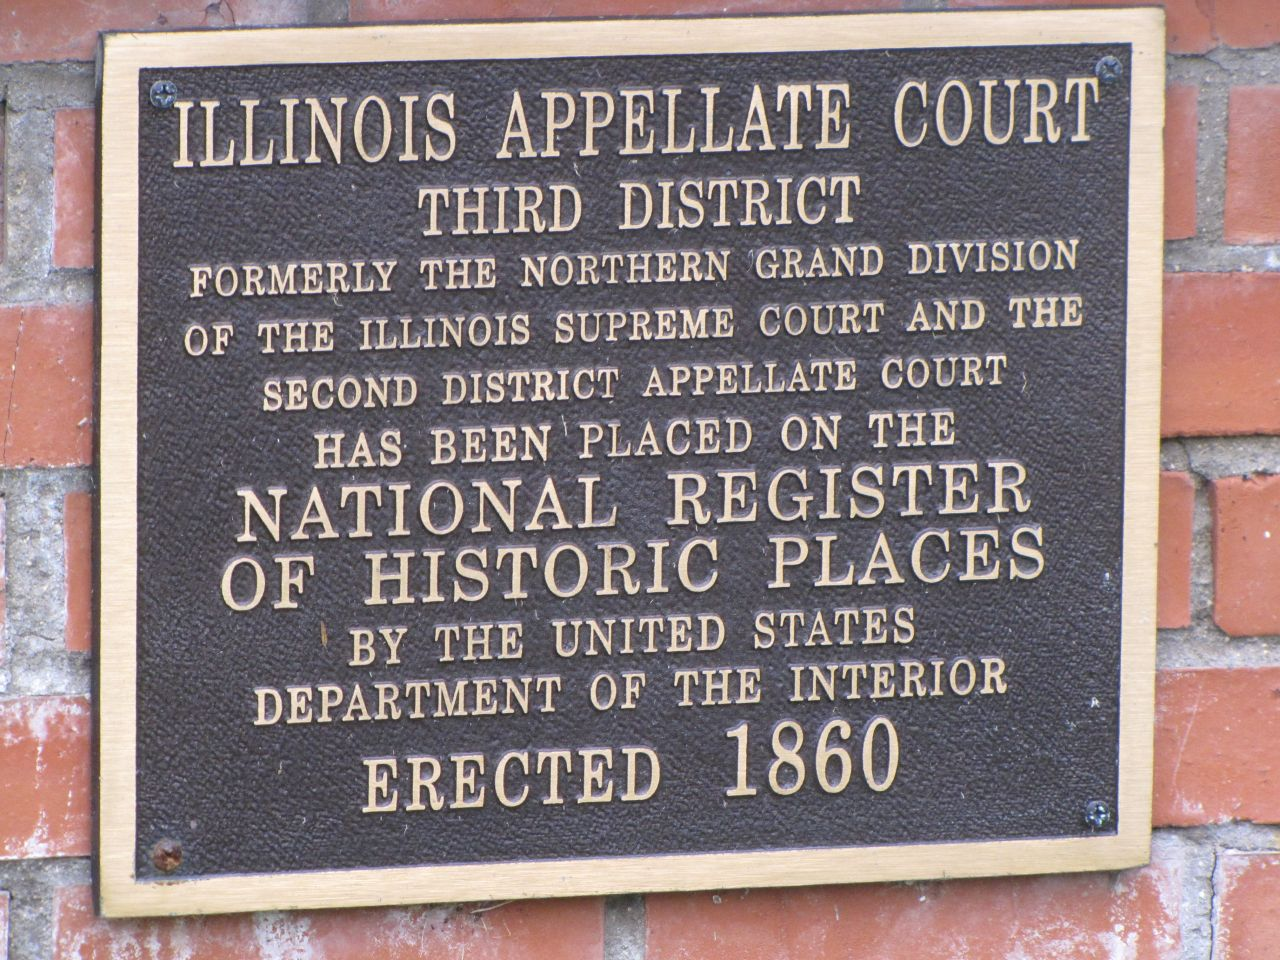 The 1860 building is on the  National Register of Historic Places.